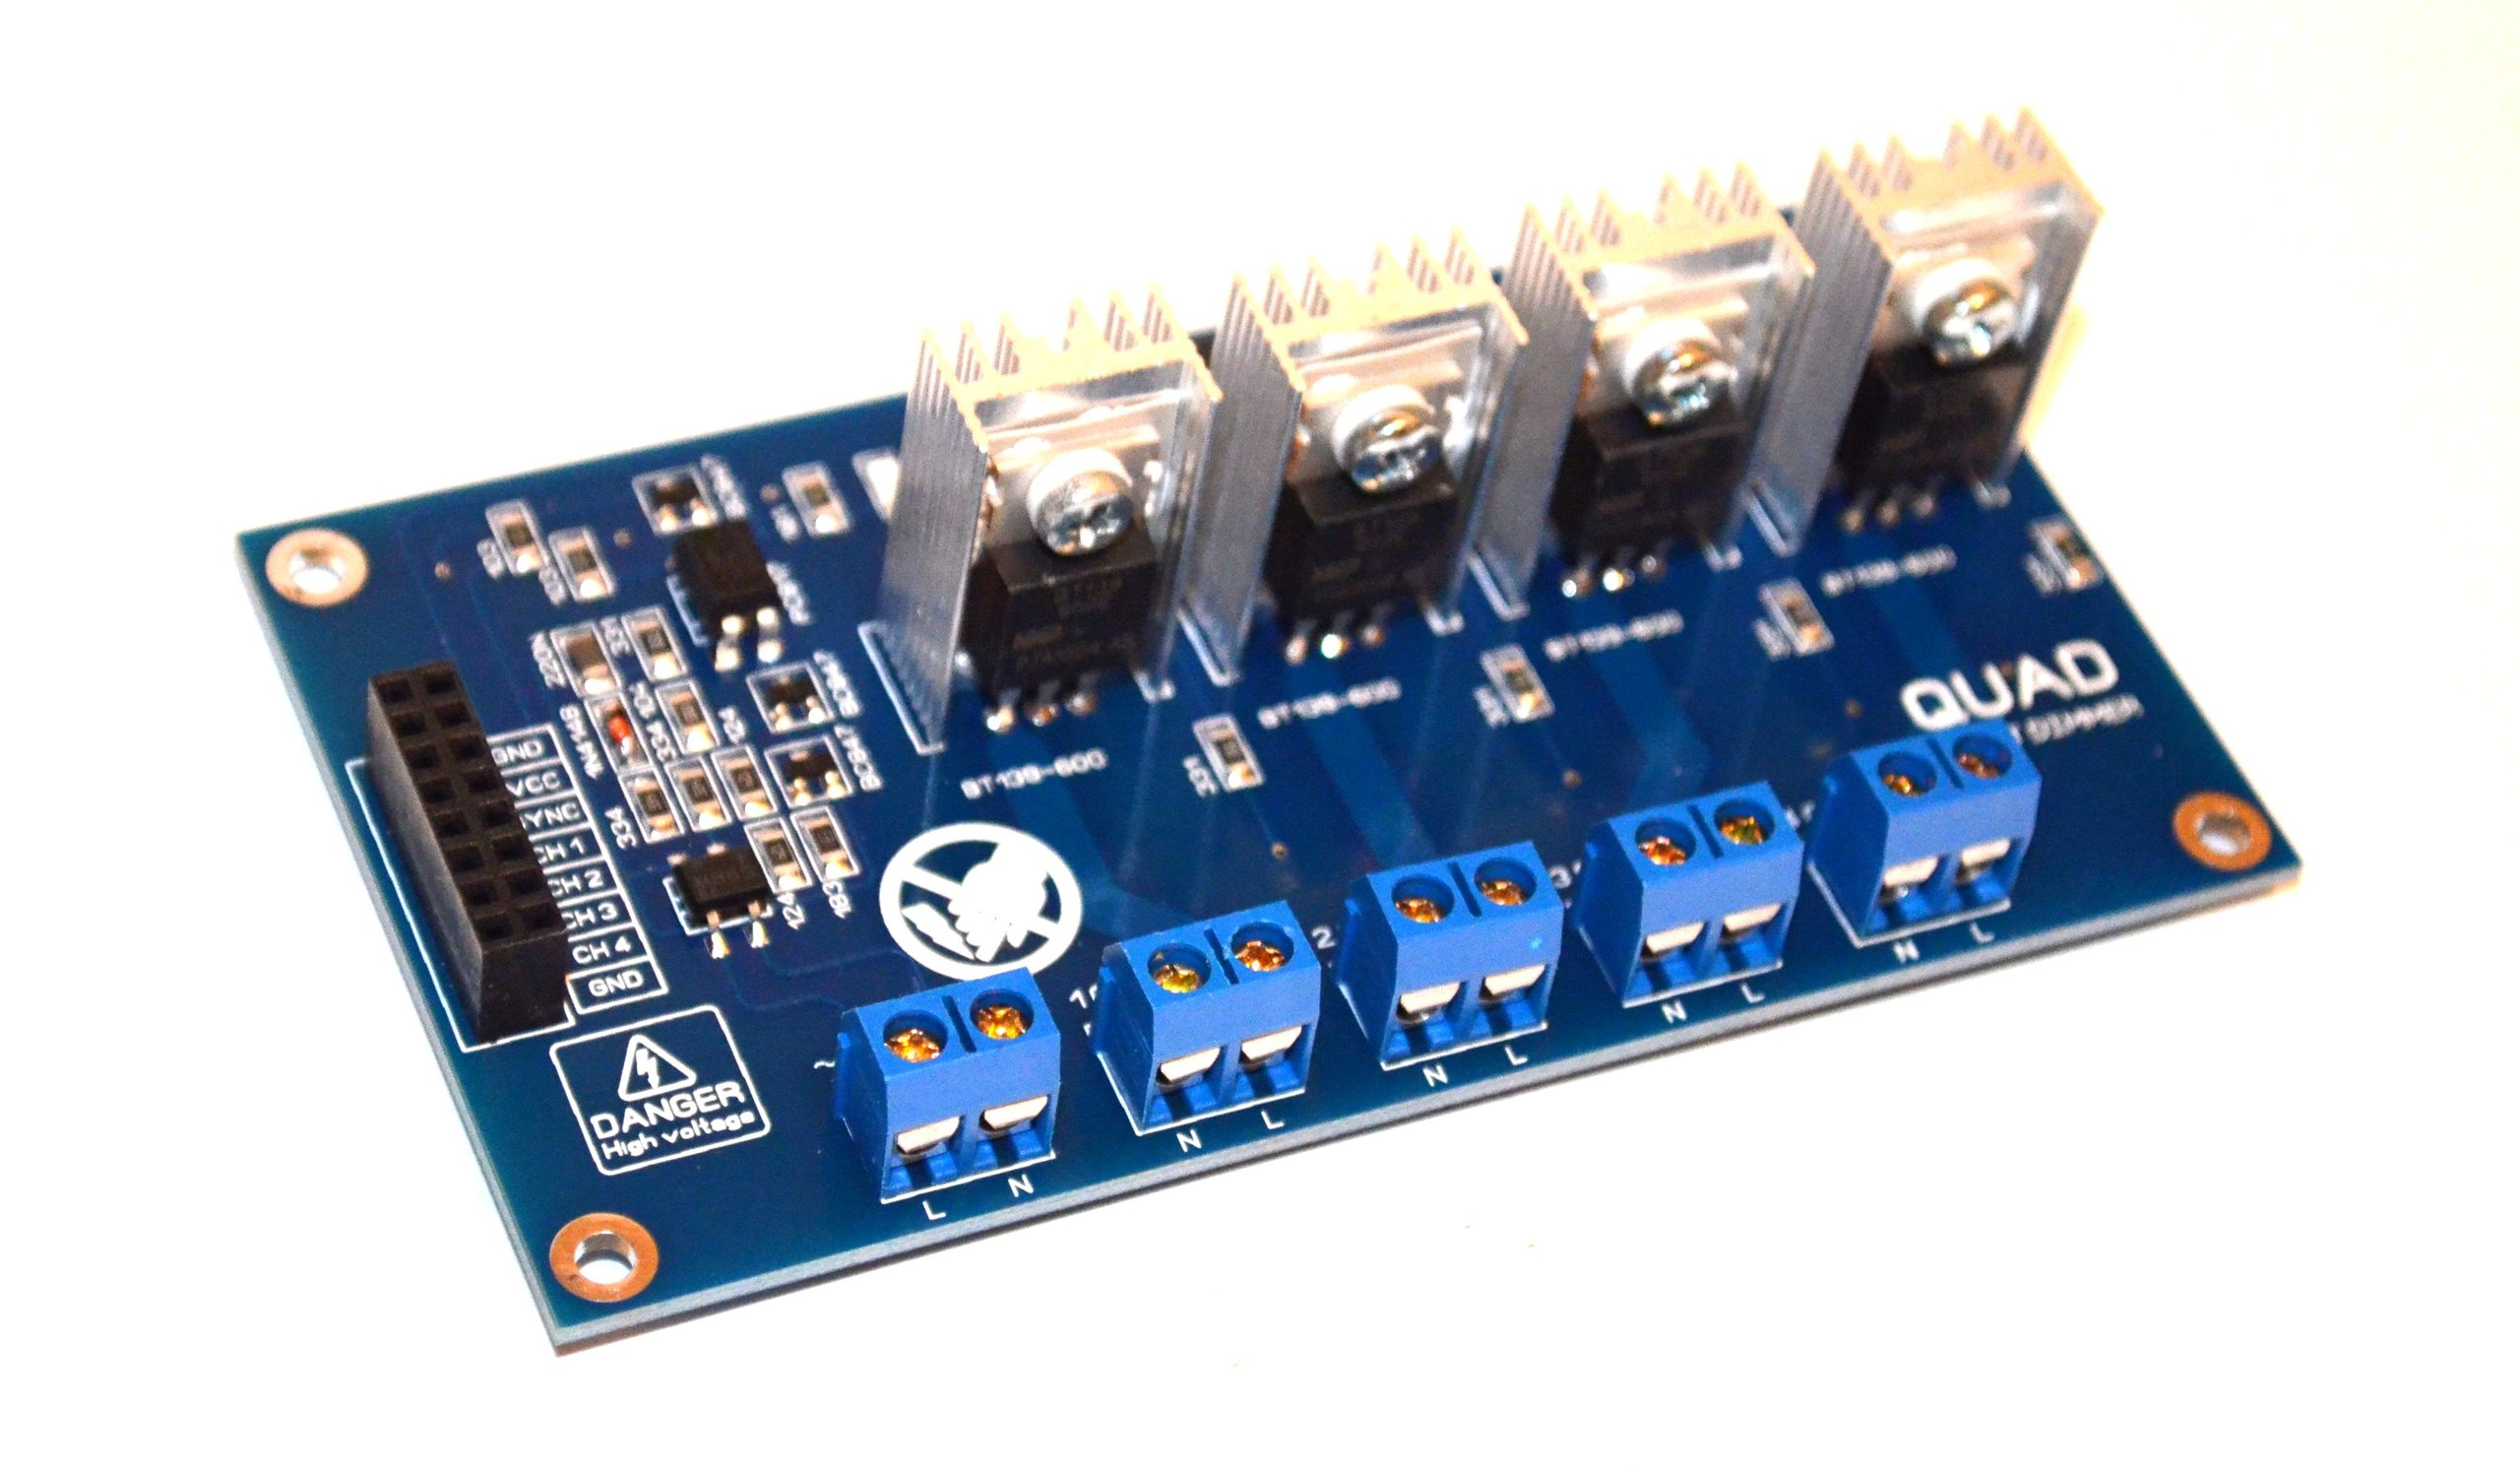 Ch ac led light dimmer v module controller board from